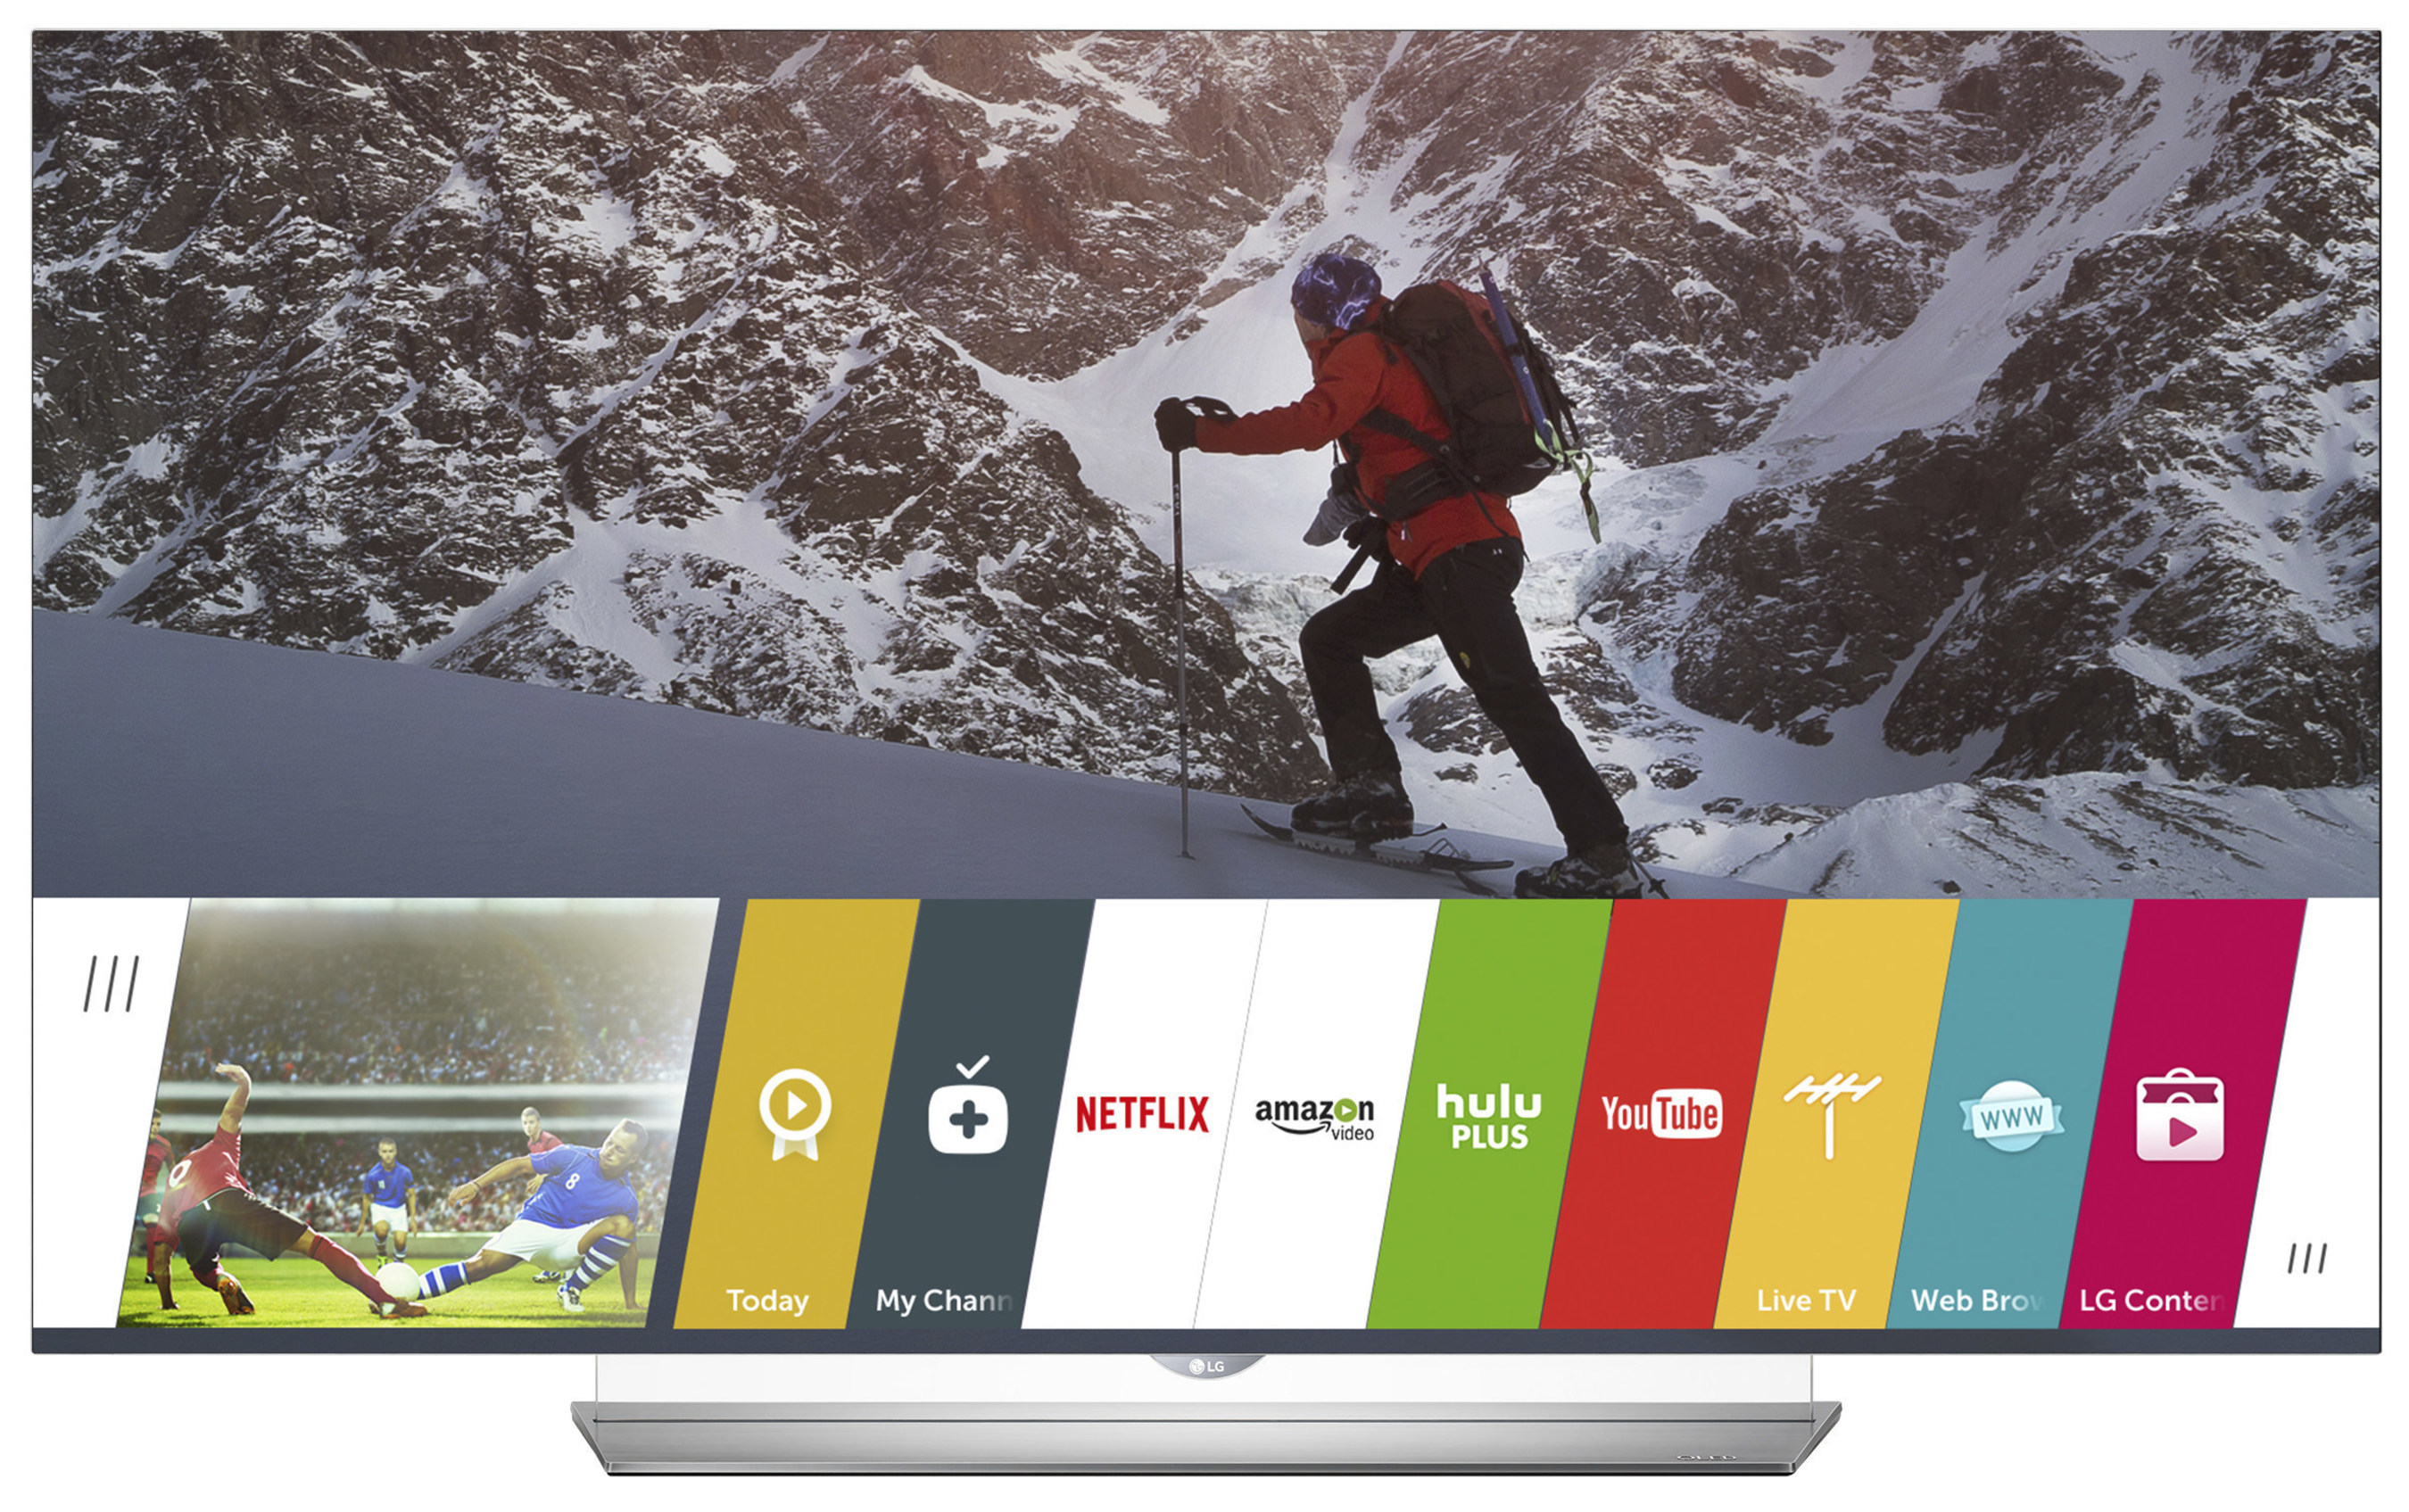 LG Electronics today announced the launch of High Dynamic Range (HDR) streaming on 2015 LG OLED 4K TVs, including the just-announced EF9500 Flat OLED 4K TV series (pictured). Consumers can now enjoy exceptional HDR picture quality streaming directly via the Amazon Video app, available on LG's webOS Smart TV platform.